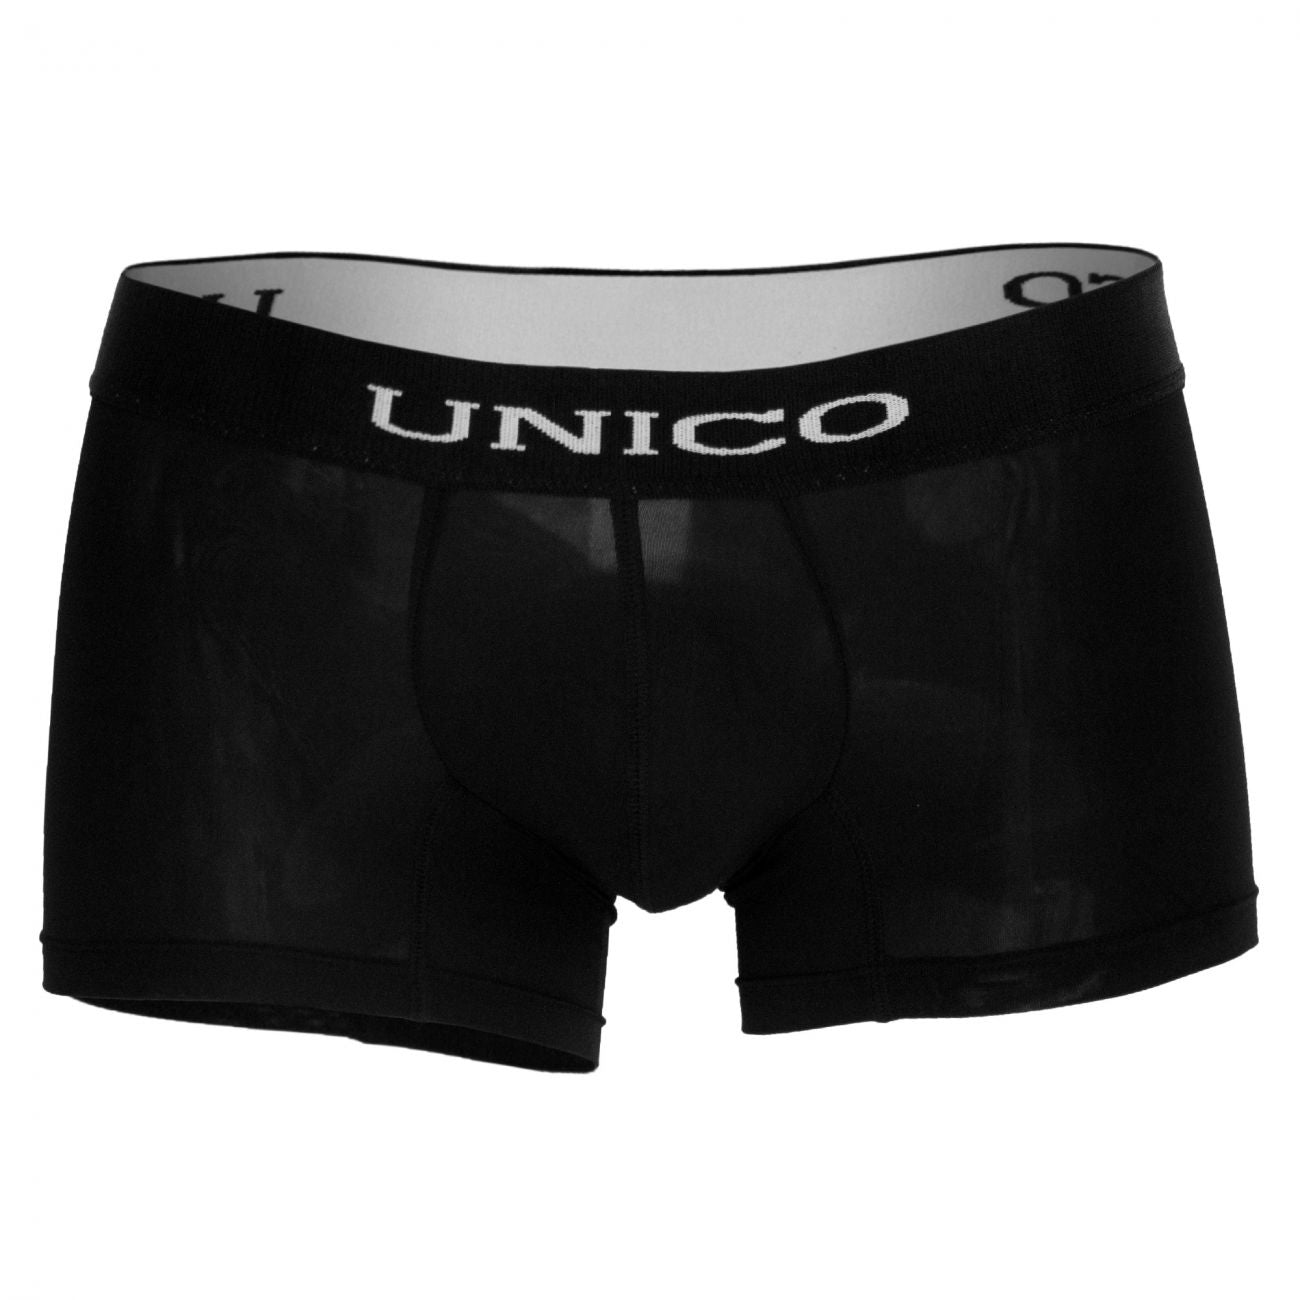 under-yours - (1212010010599) Boxer Briefs Intenso Microfiber - Unico - Mens Underwear